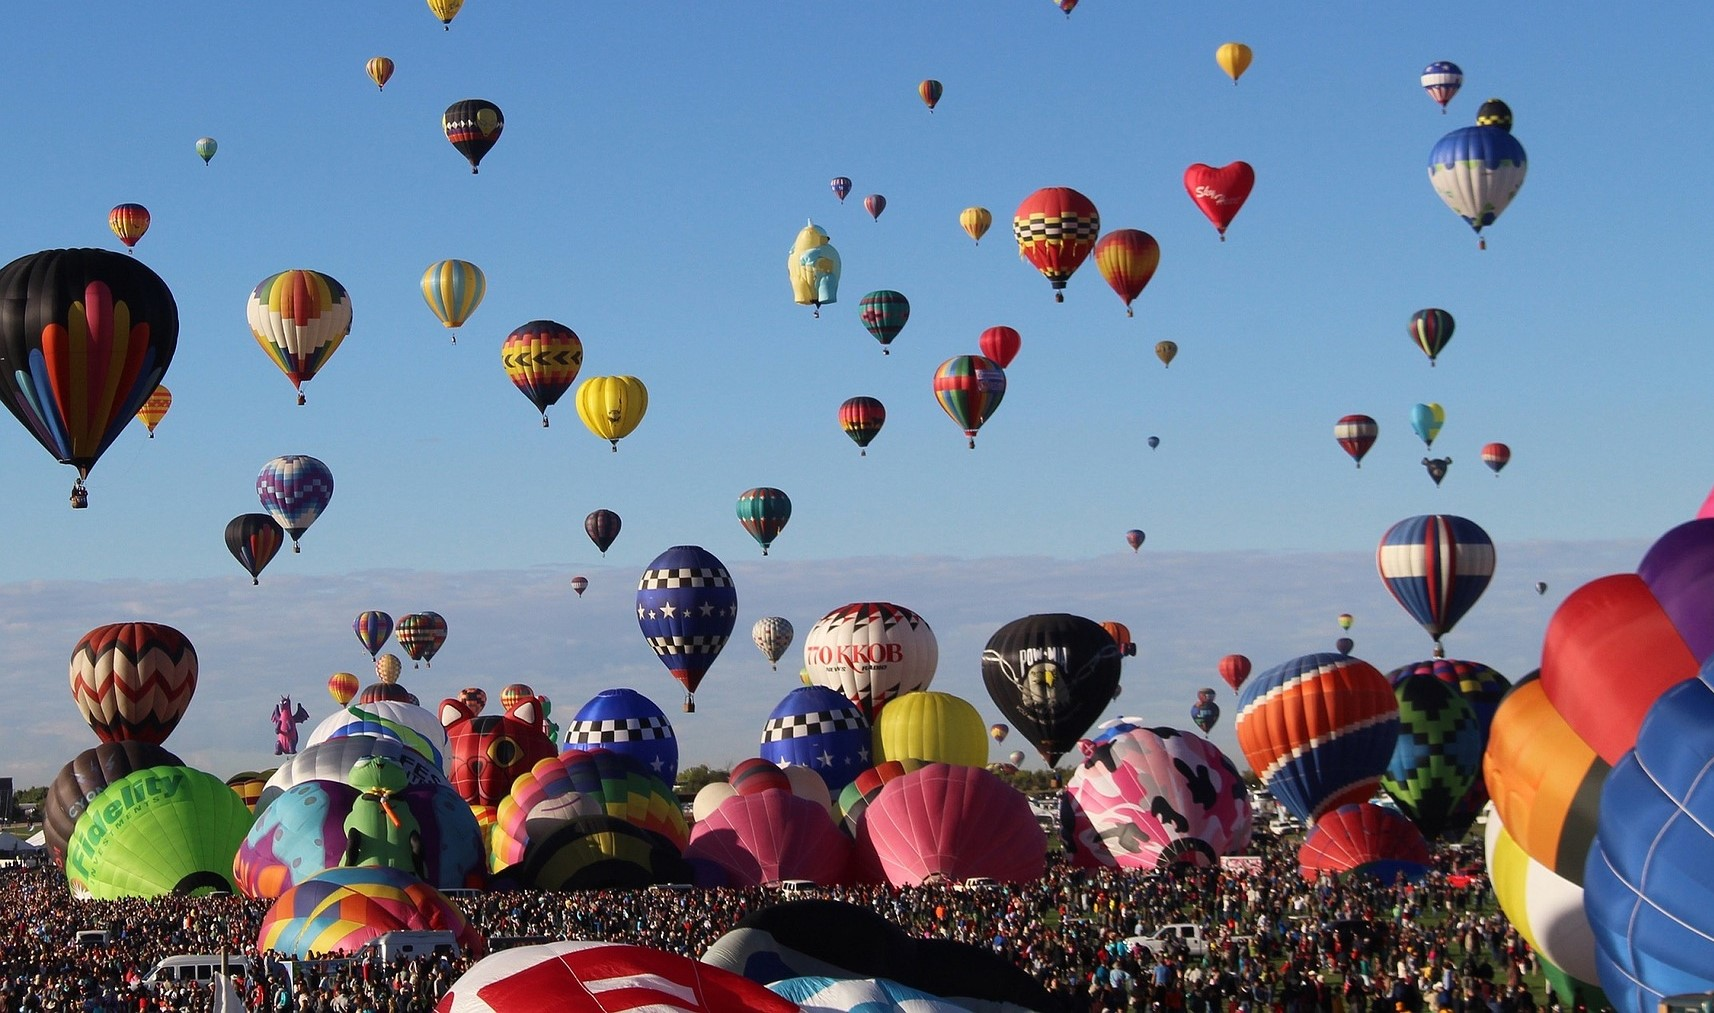 Hot Air Balloon Festival in Albuquerque, New Mexico | Kids Car Donations